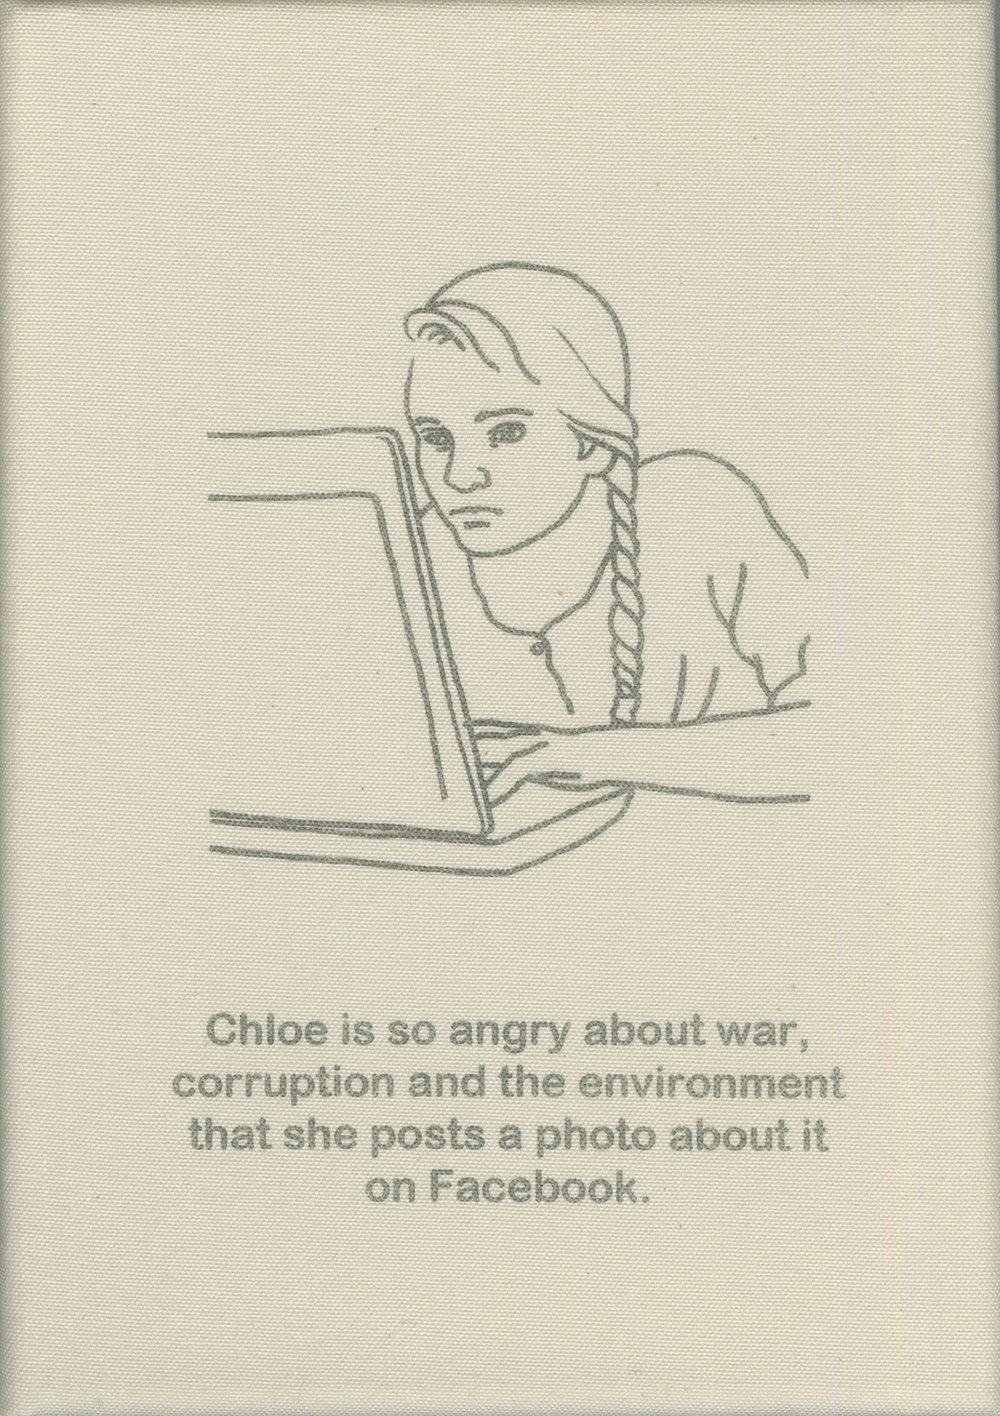 Chloe is so angry about war, corruption and the environment that she posts a photo about it on Facebook.